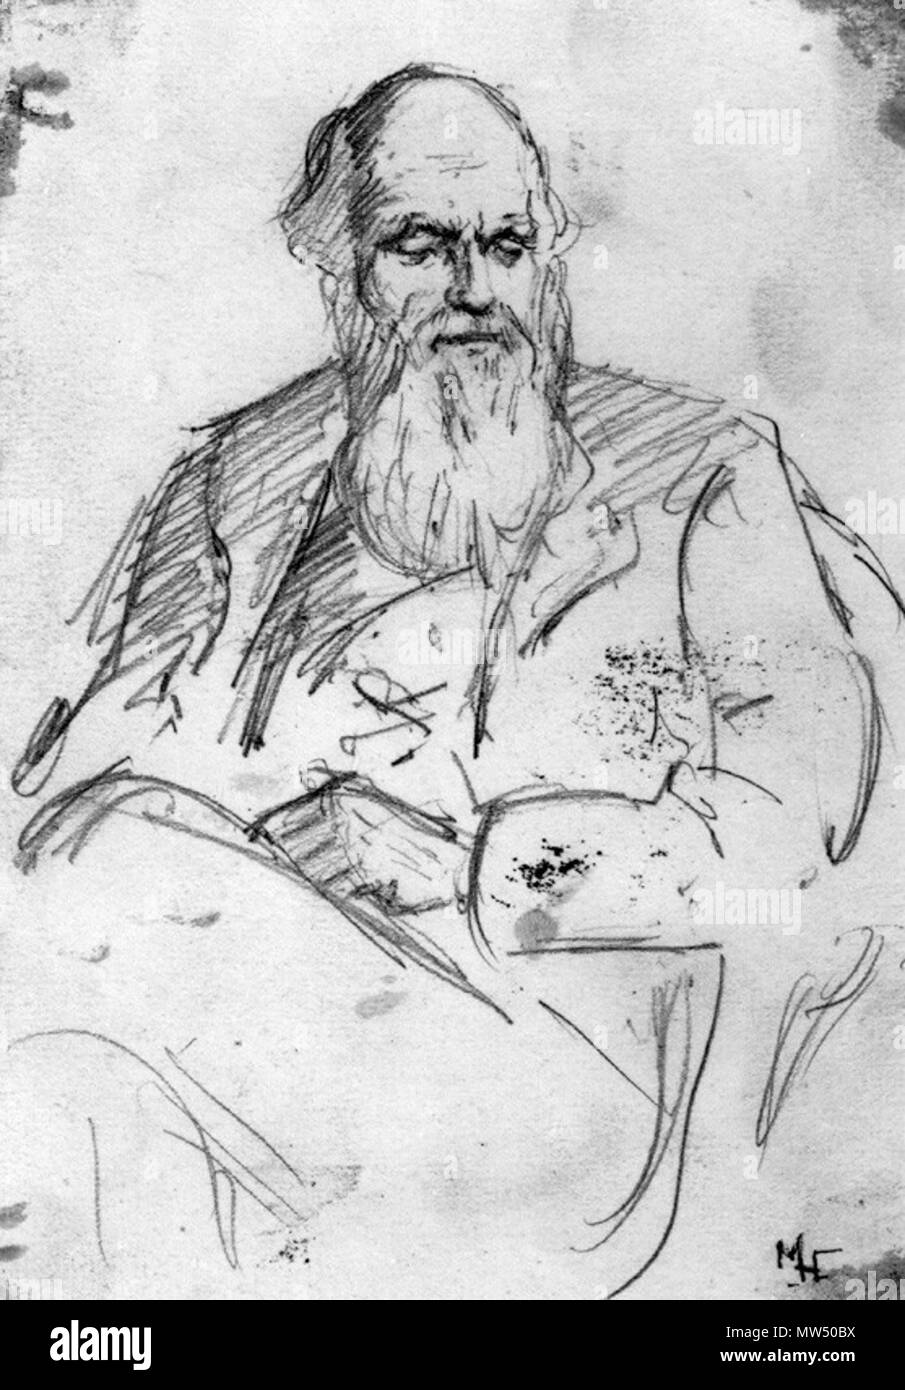 English a pencil sketch of charles darwin 7 1 8 in x 4 7 8 in 181 mm x 124 mm 1878 marion collier née huxley 1859 1887 153 charles darwin sketch